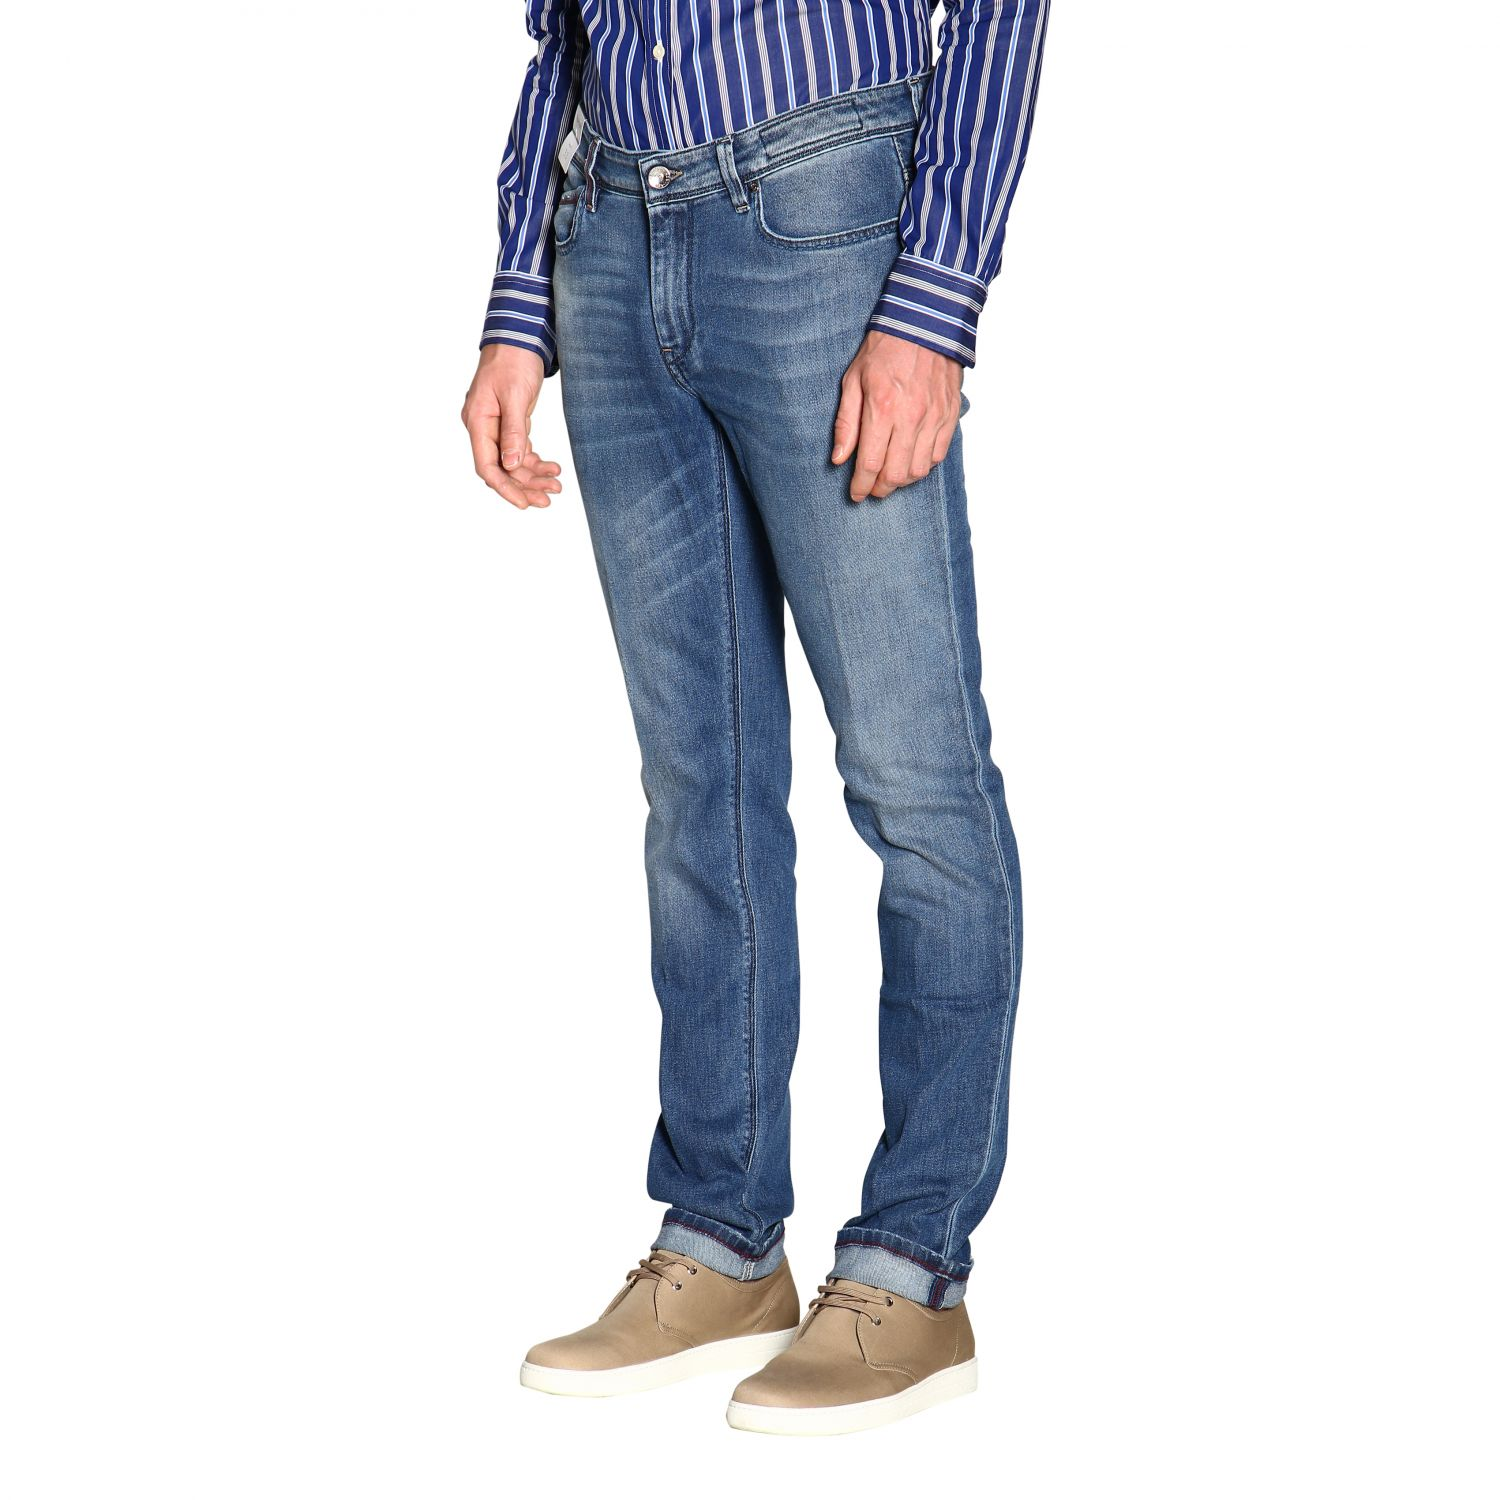 Jeans hombre Re-hash azul oscuro 4